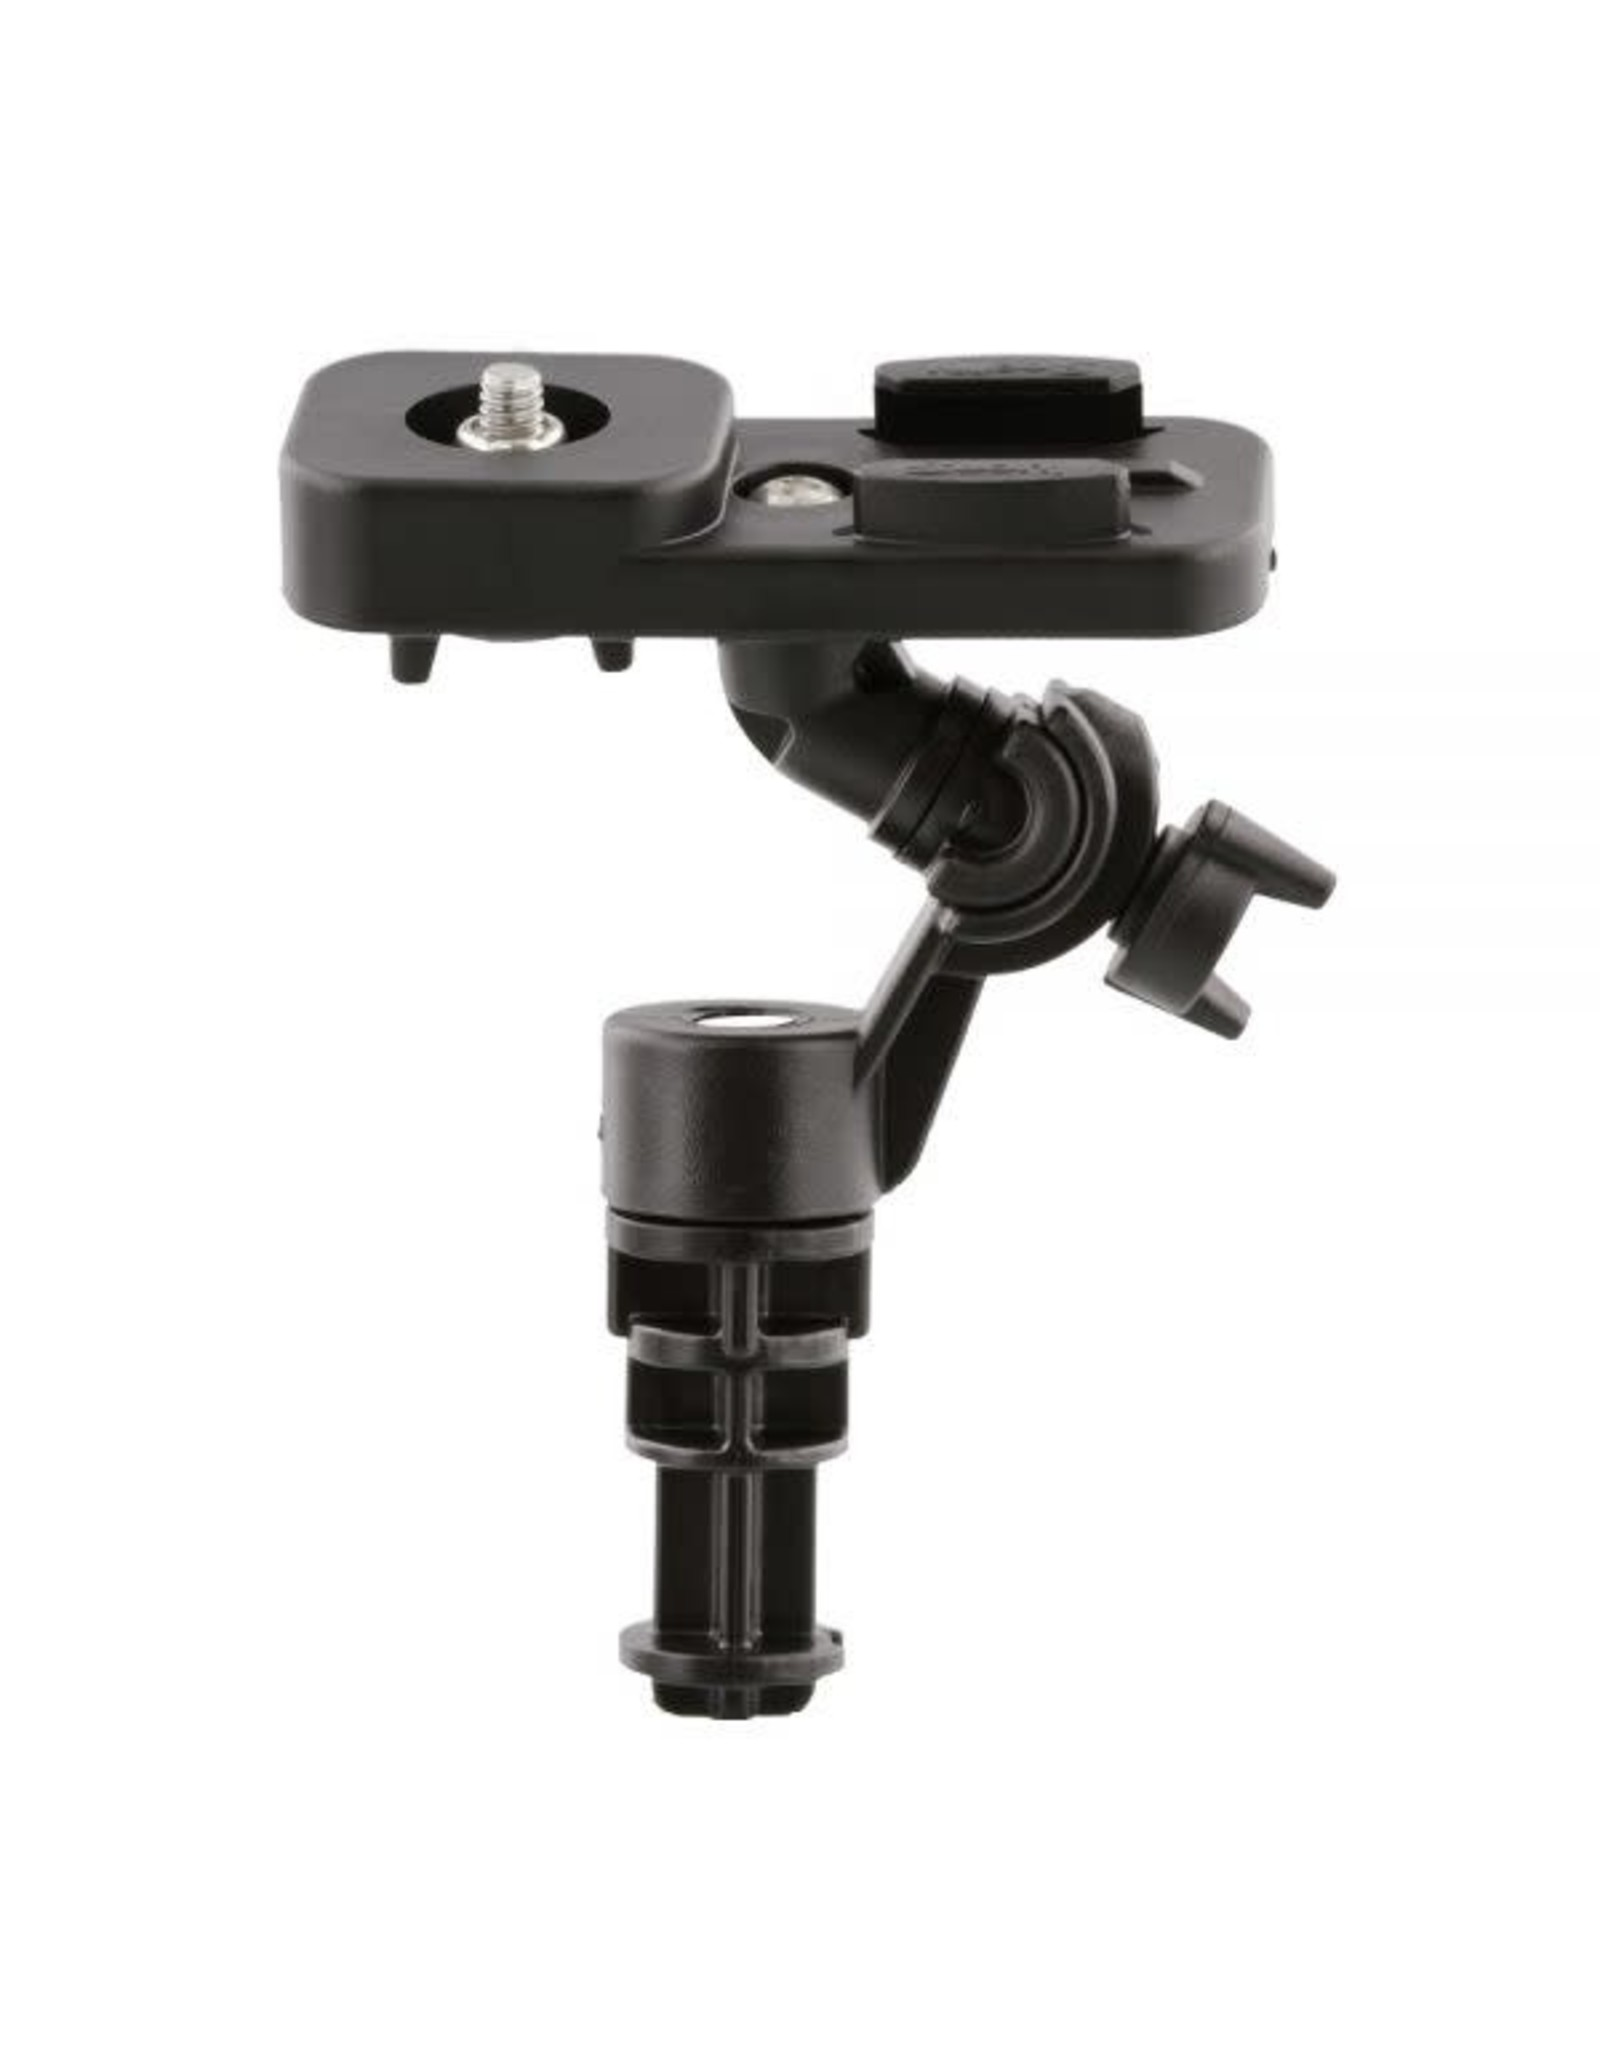 Scotty Scotty Portable camera mount